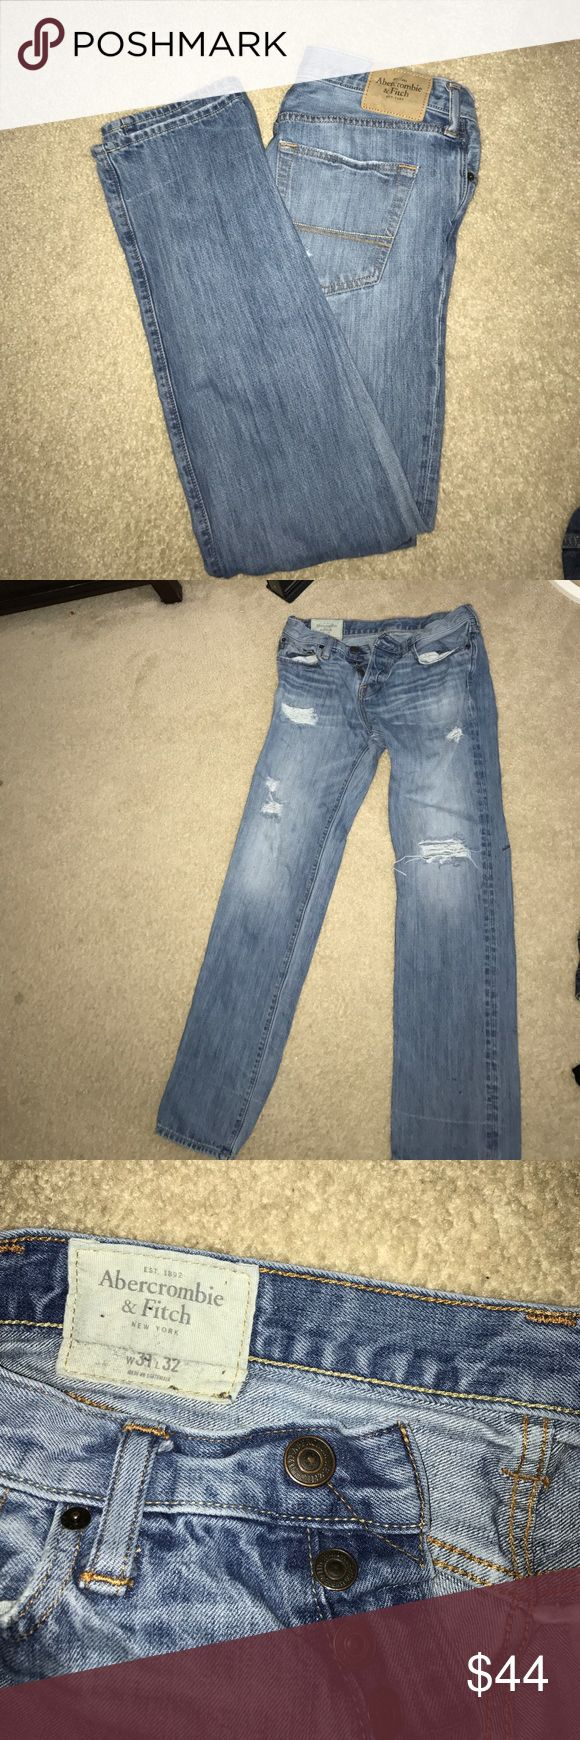 Men's Abercrombie and fitch jeans Light denim distressed look Abercrombie and Fitch slim straight jeans men's size 31x32 great looking pair barely worn Abercrombie & Fitch Jeans Slim Straight